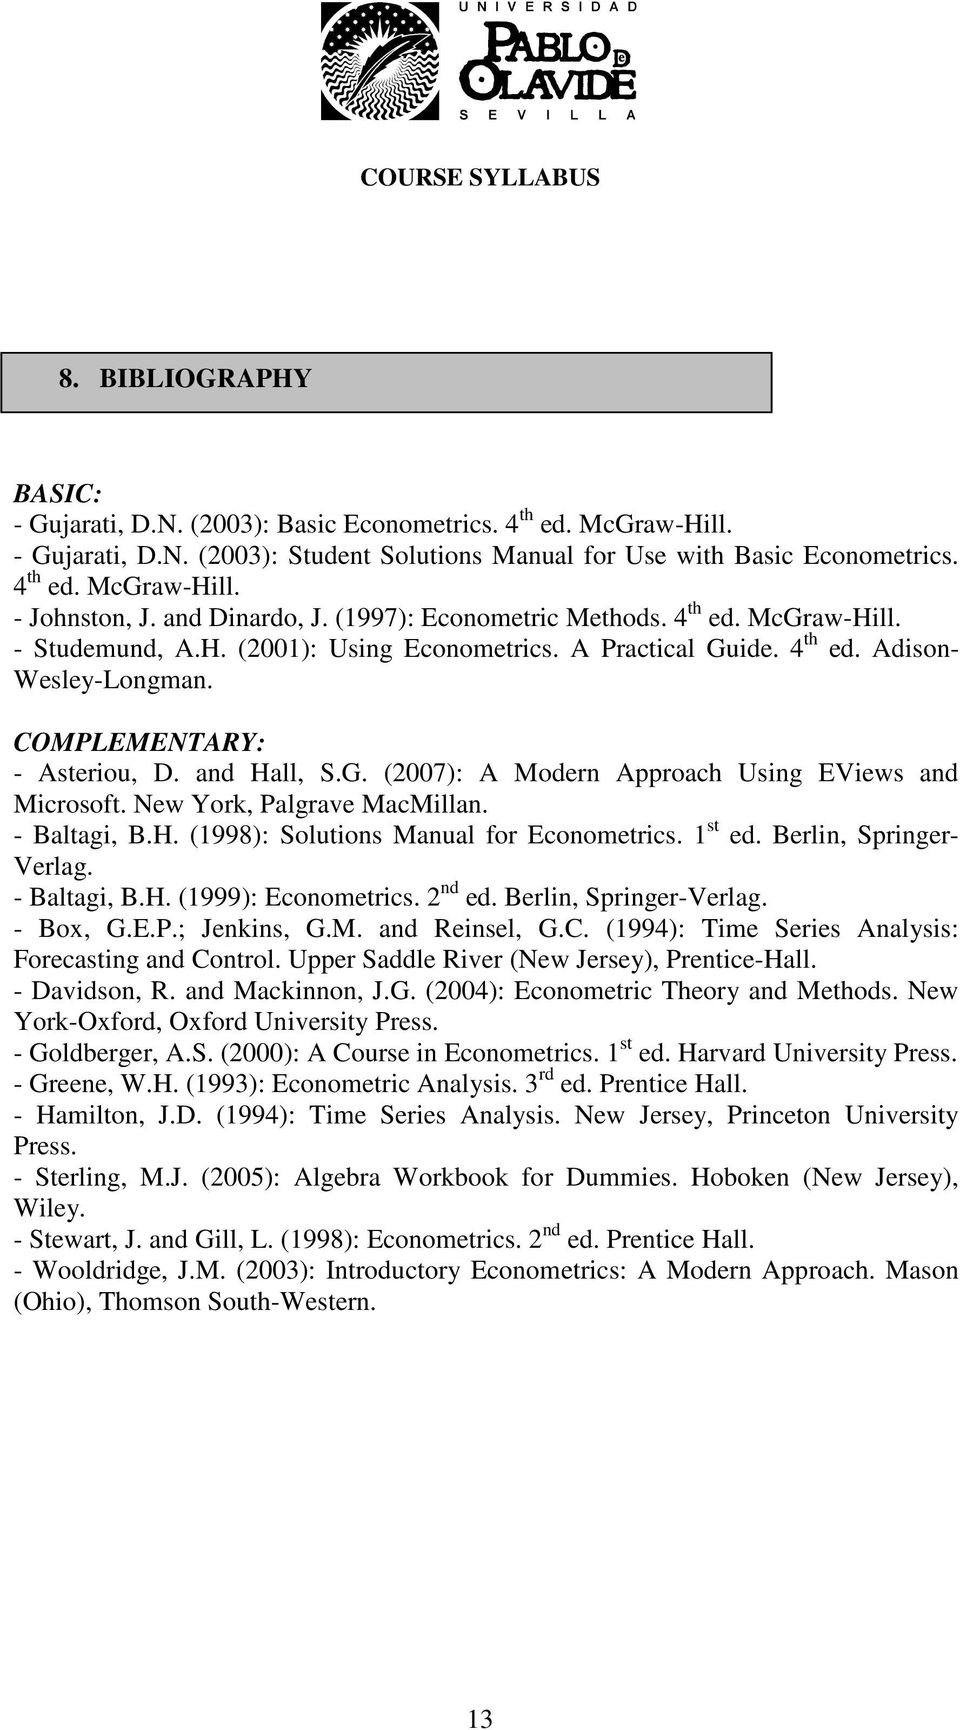 and Hall, S.G. (2007): A Modern Approach Using EViews and Microsoft. New York, Palgrave MacMillan. - Baltagi, B.H. (1998): Solutions Manual for Econometrics. 1 st ed. Berlin, Springer- Verlag.